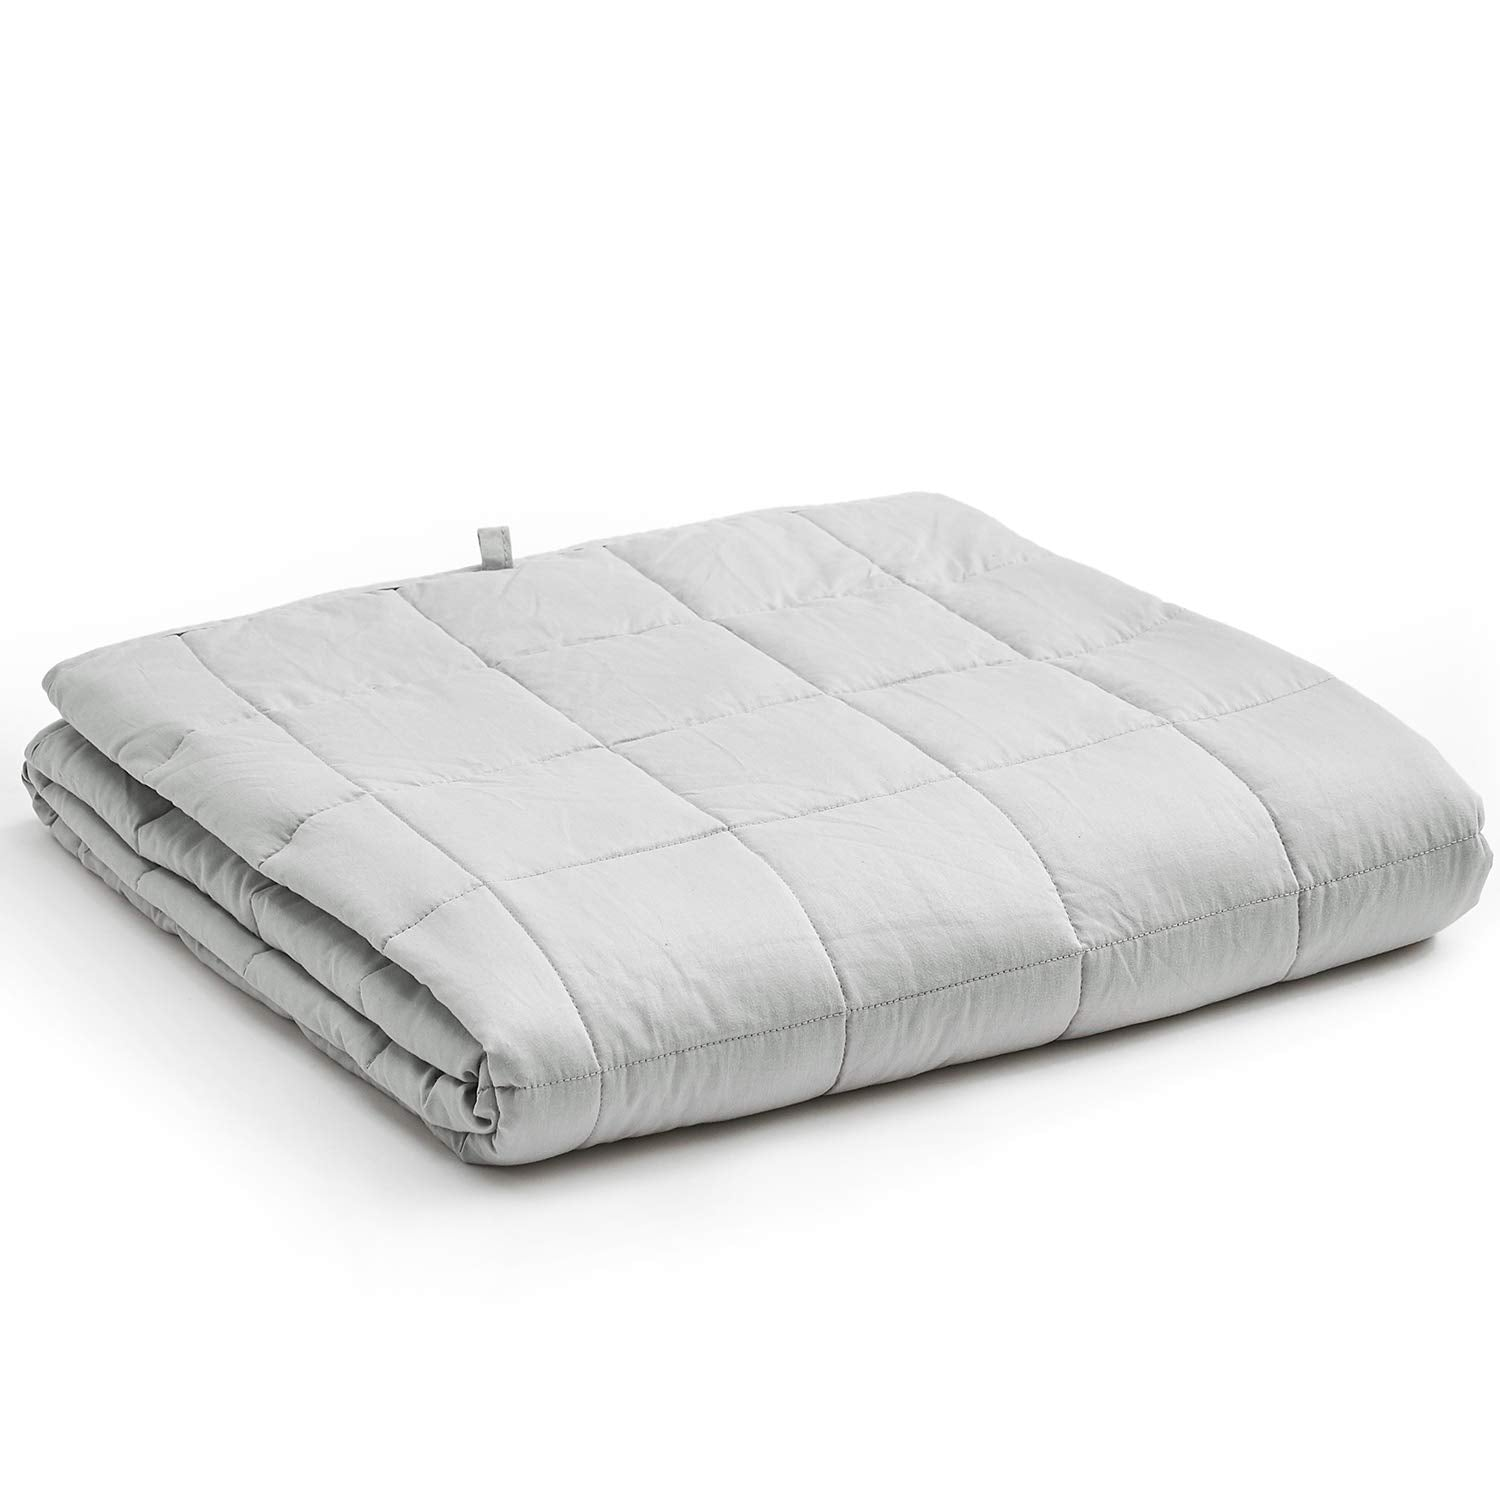 Weighted Blanket (15 lbs, 48''x72'', Twin Size) - Light Grey